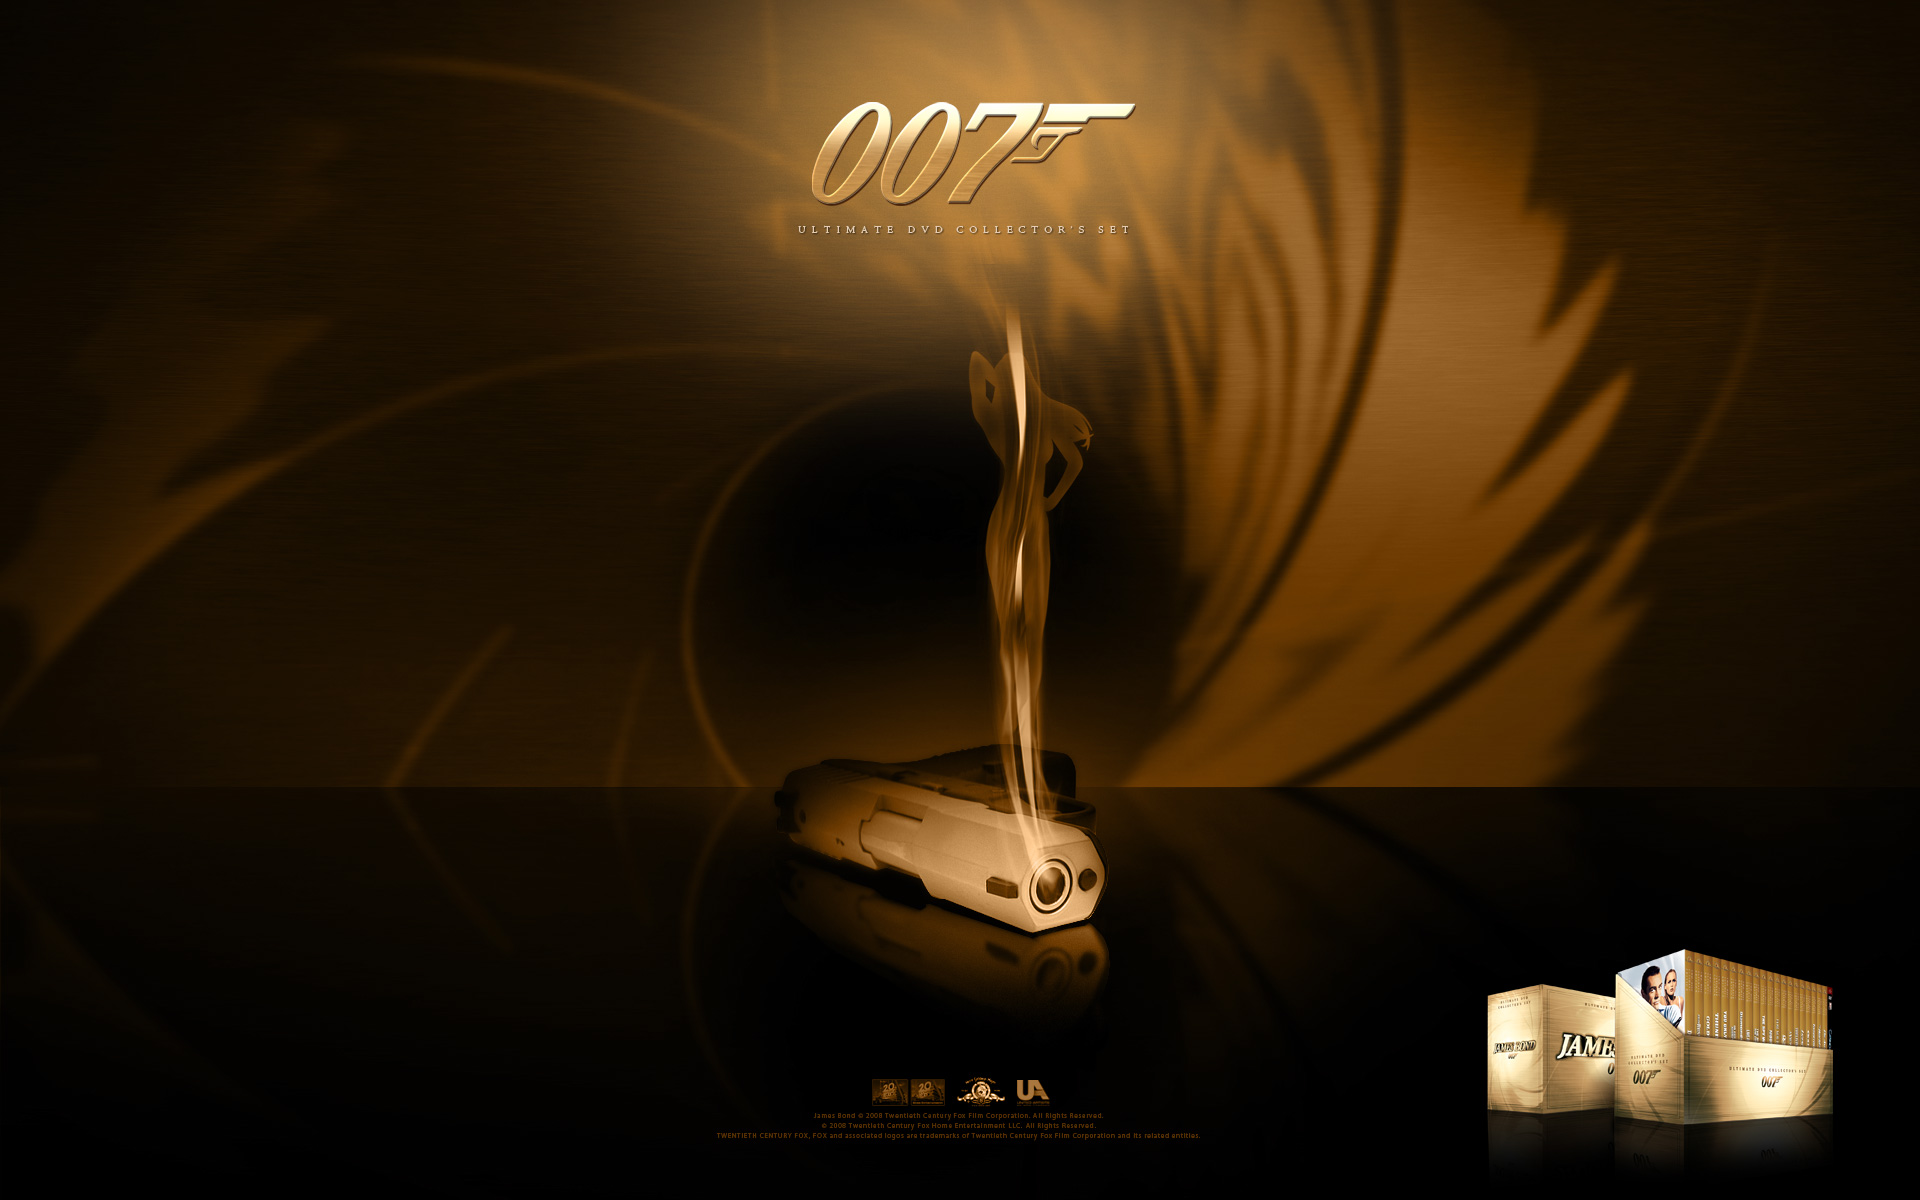 James Bond 007 Wallpaper 1920x1200